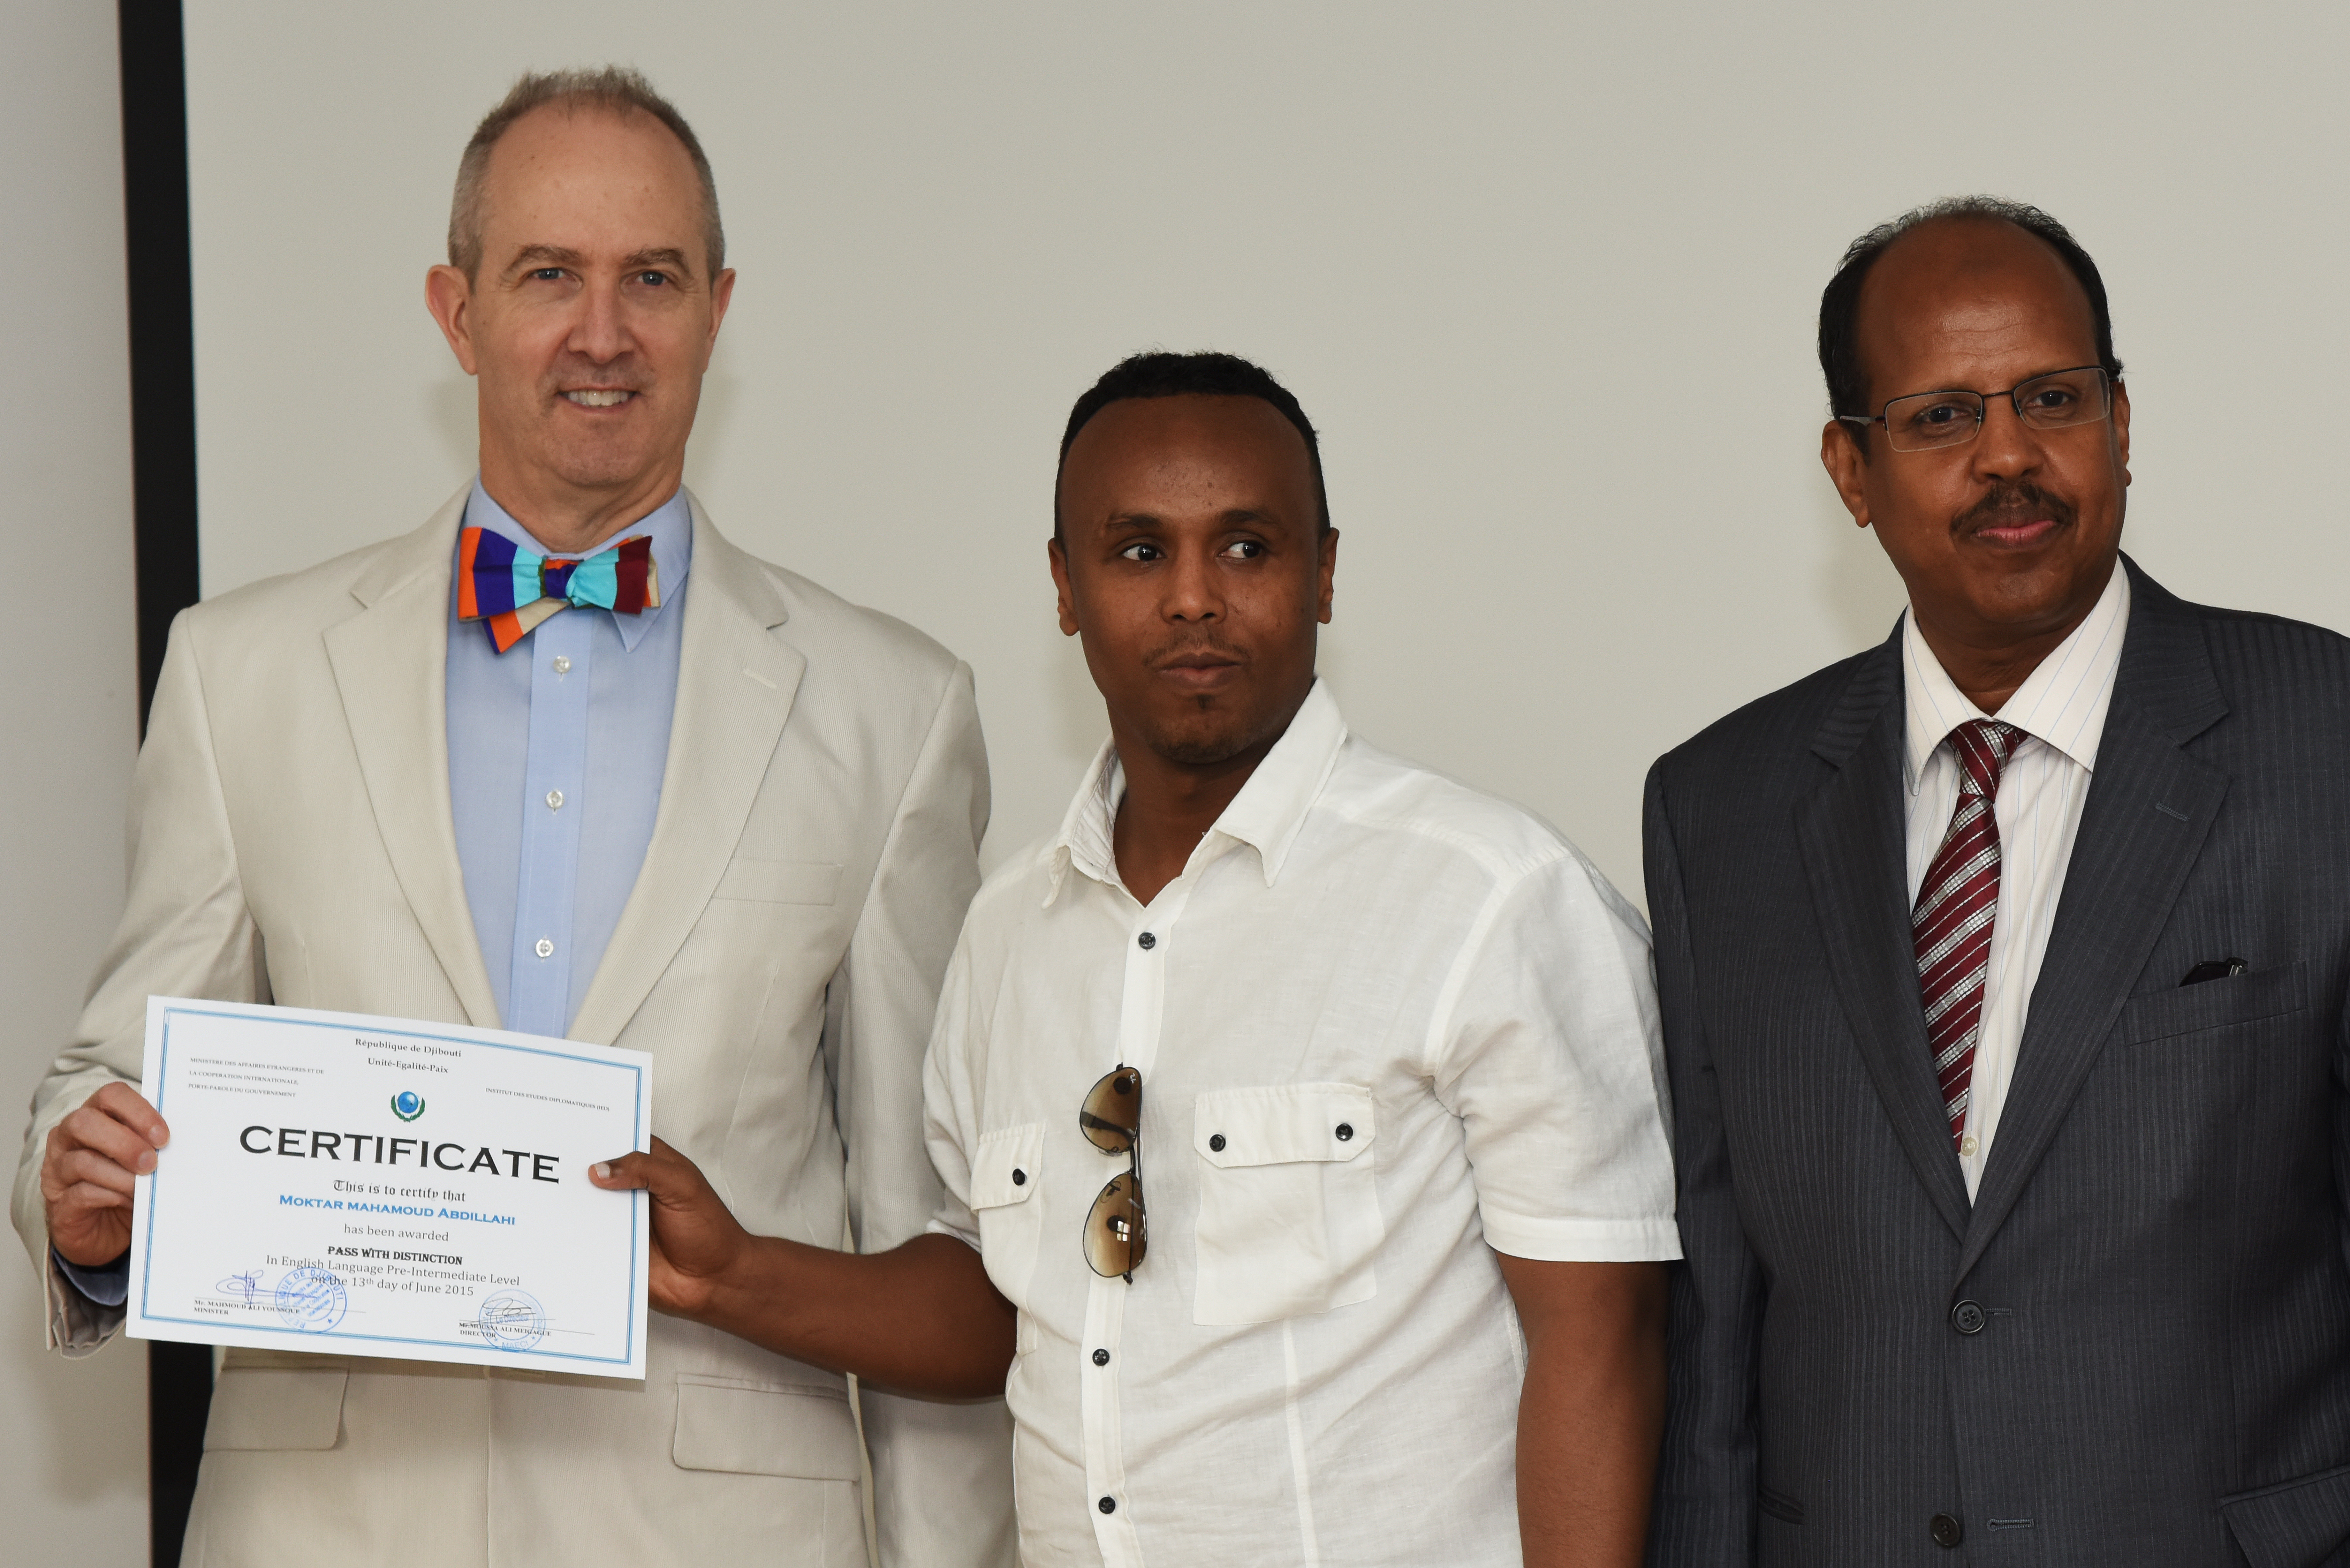 Moktar Mahamoud (middle), an English student, receives his graduation certificate from Tom Kelly (left), U.S. Ambassador to Djibouti and Mahmoud Ali Youssouf (right), Djibouti Minister of Foreign Affairs and International Cooperation.  Moktar recently went to the U.S., where he used his new English skills.  (U.S. Air Force photo by Staff Sgt. Maria Bowman)